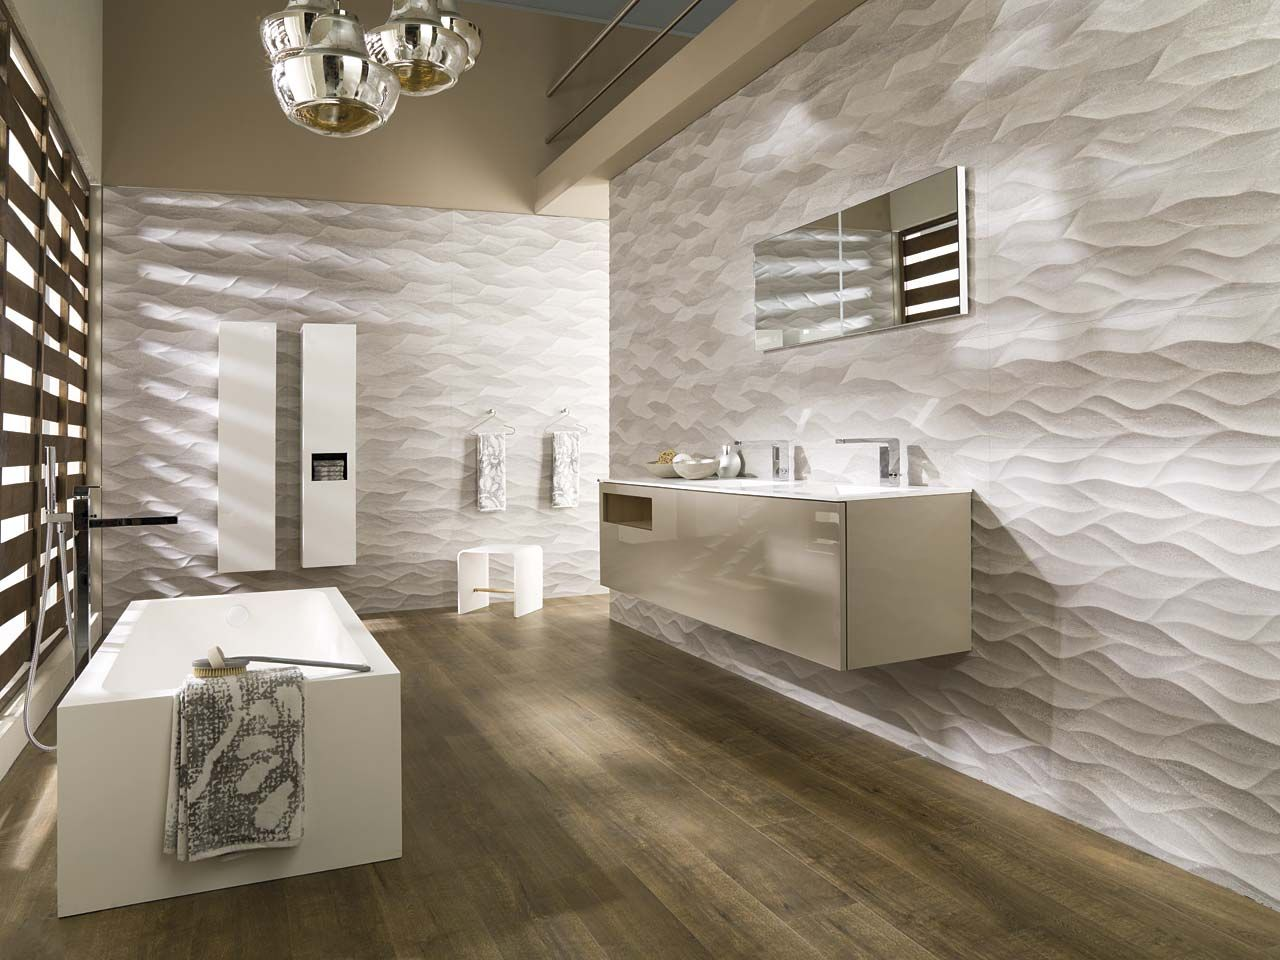 Ba o estilo contemporaneo marron blanco gris ba os pinterest brillo blanco yeso y brillo Porcelanosa banos pequenos